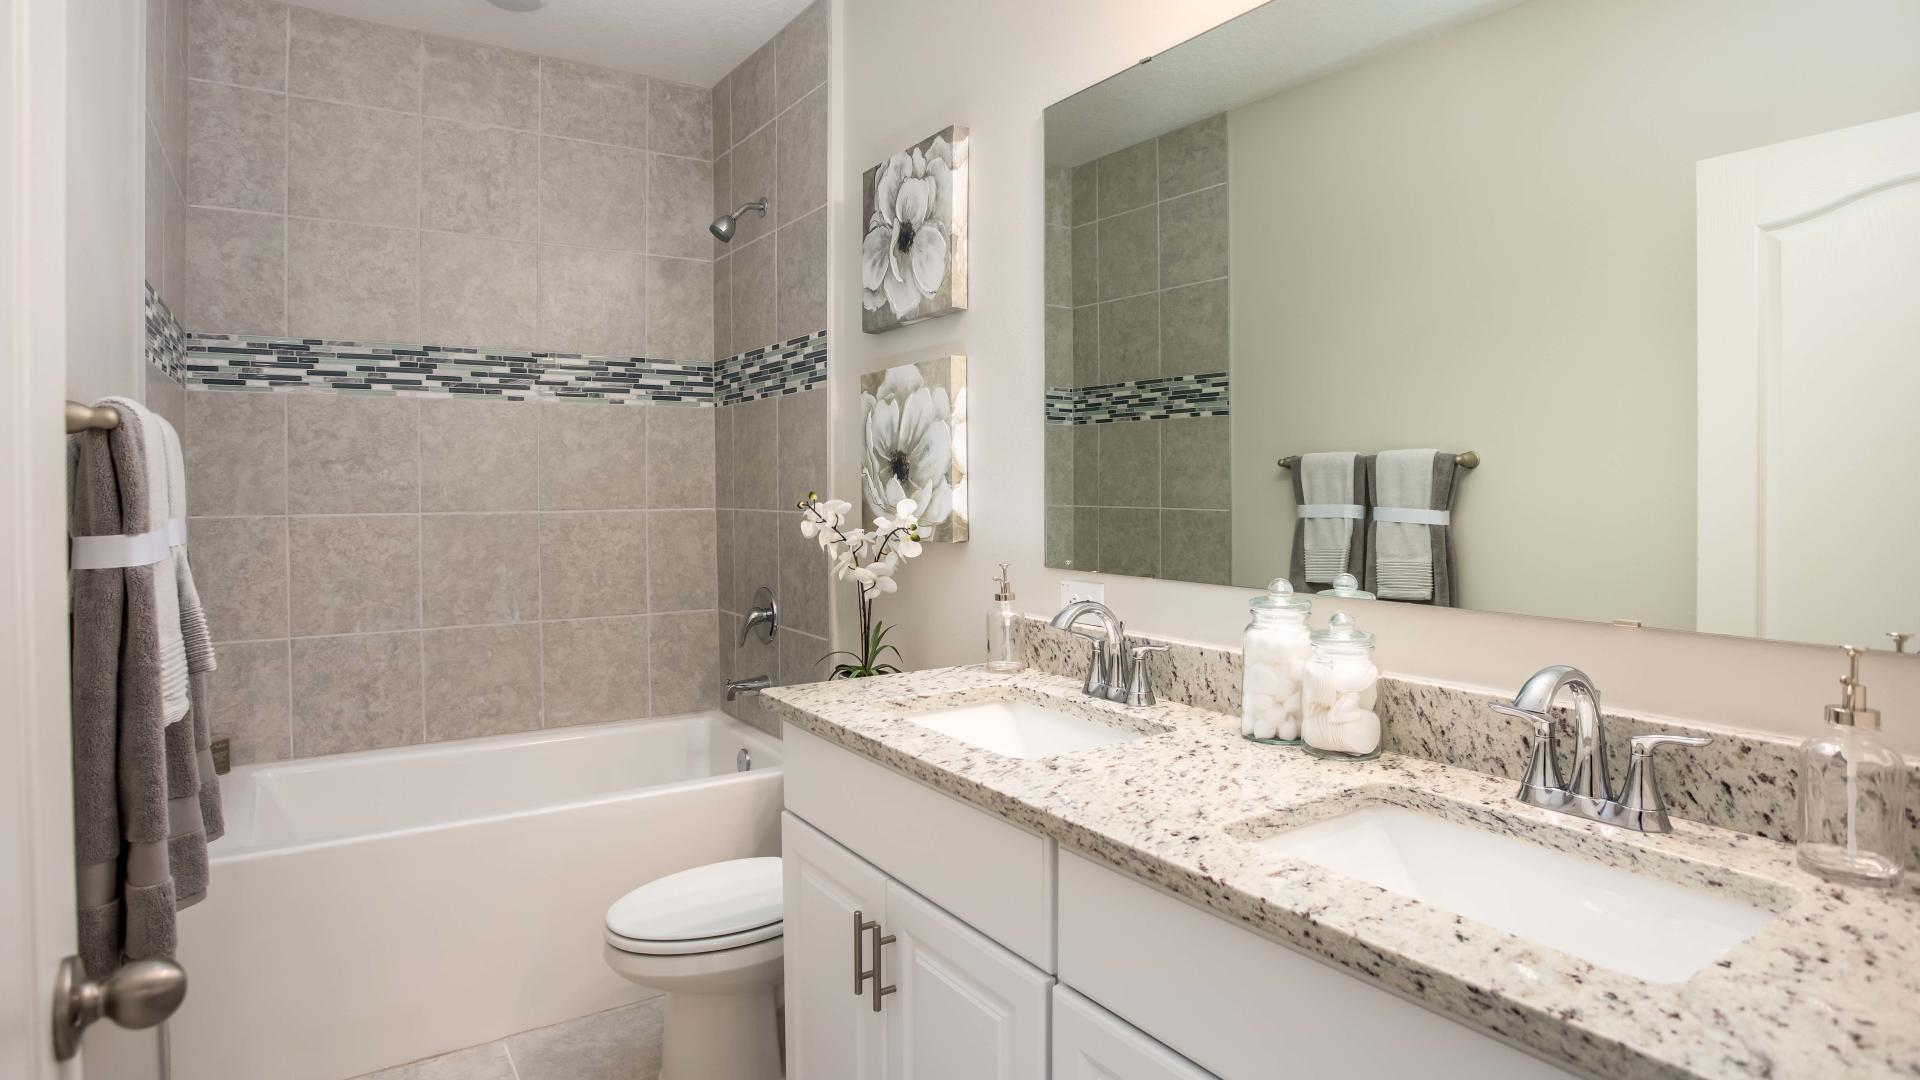 Bathroom featured in the Willow By Maronda Homes in Daytona Beach, FL